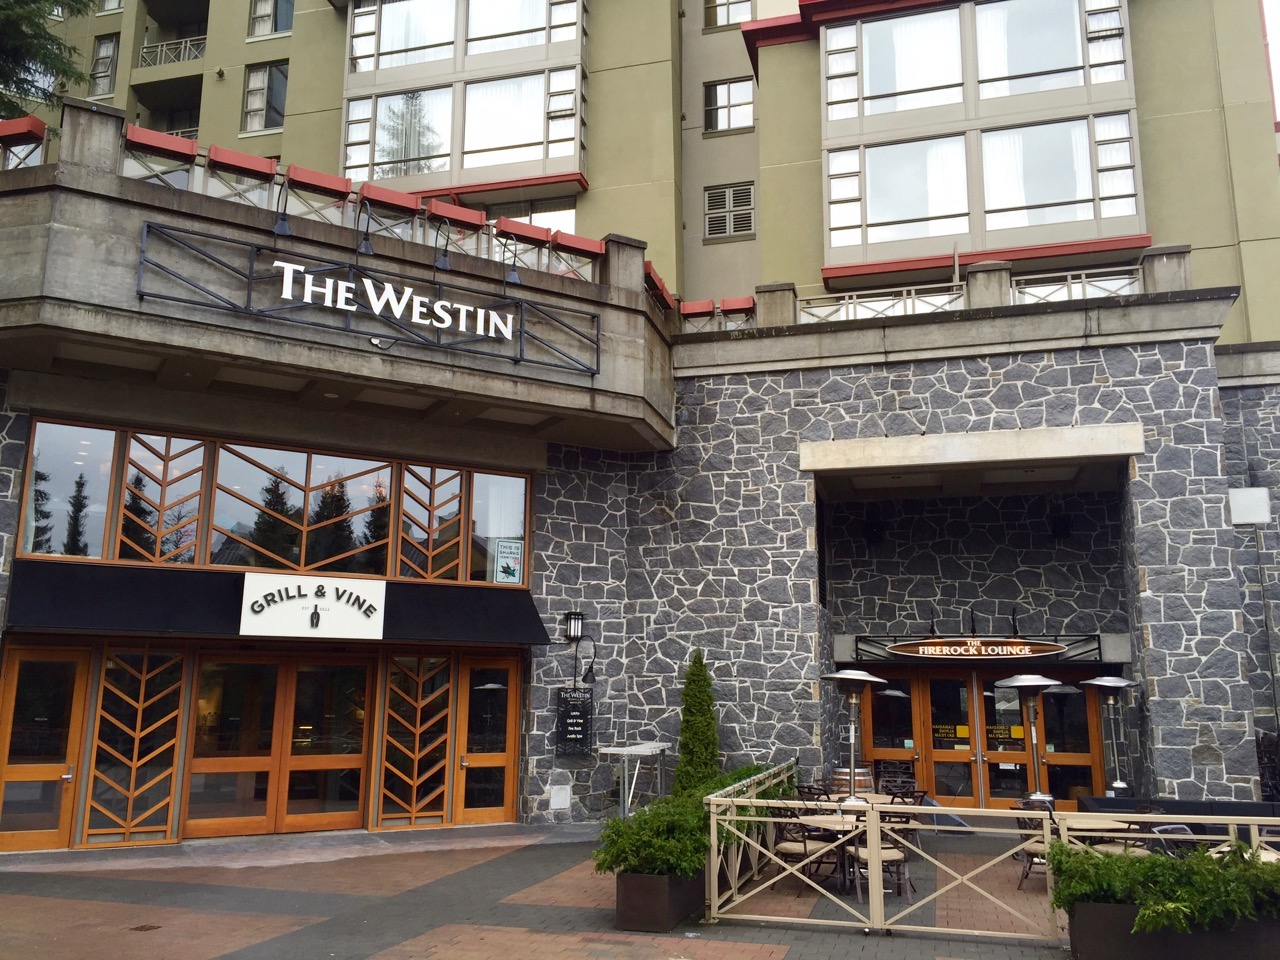 Westin Whistler Grill & Vine | Point Hacks